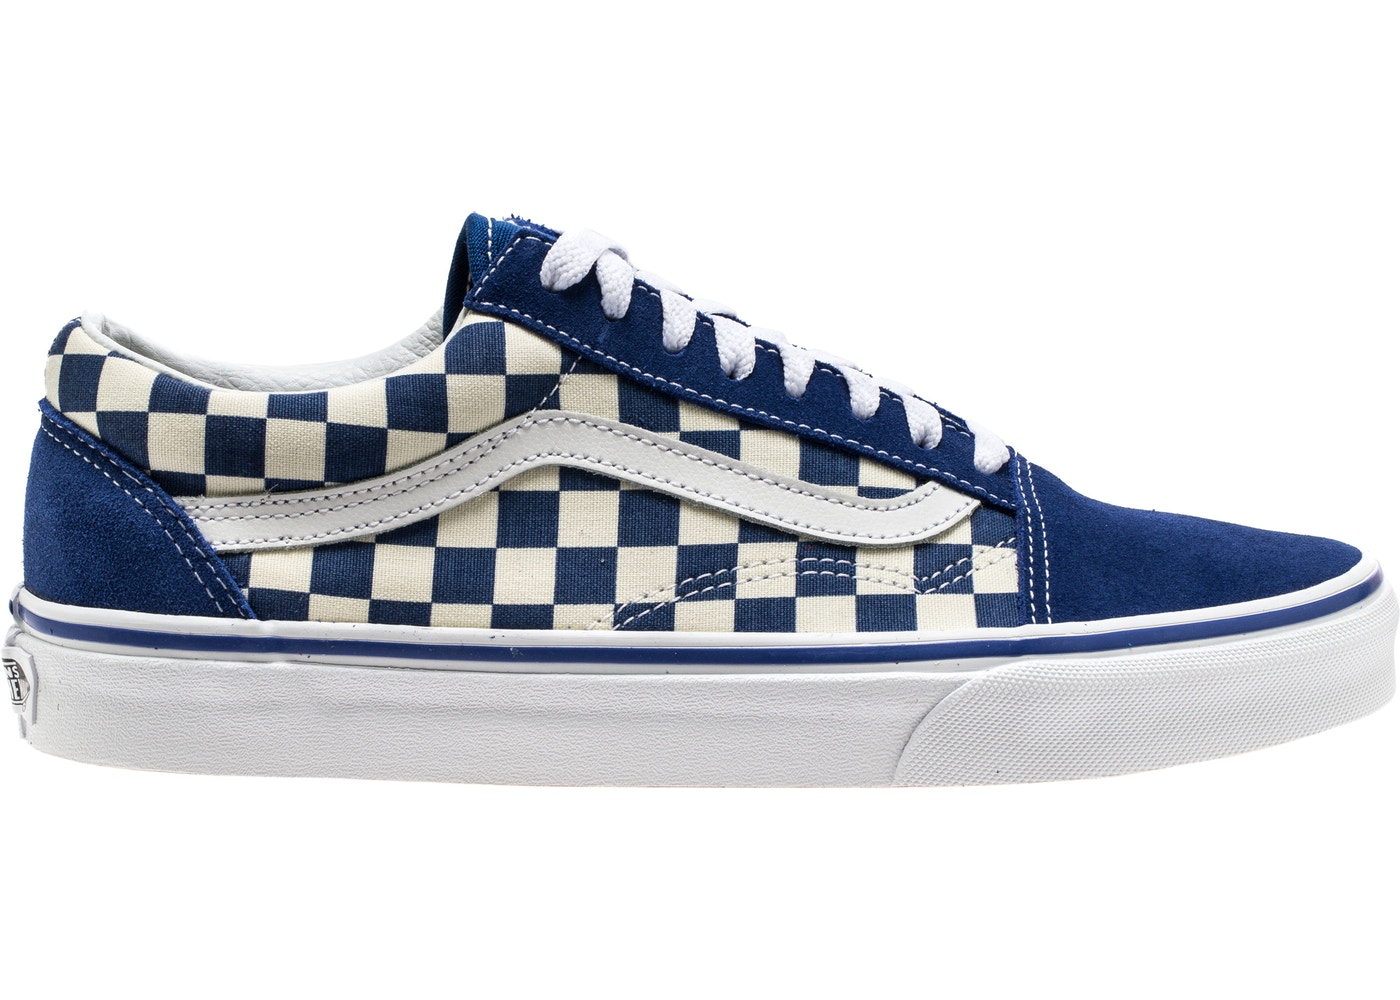 5482ee36463 Vans Old Skool Blue Checkerboard - VN0A38G1P0U